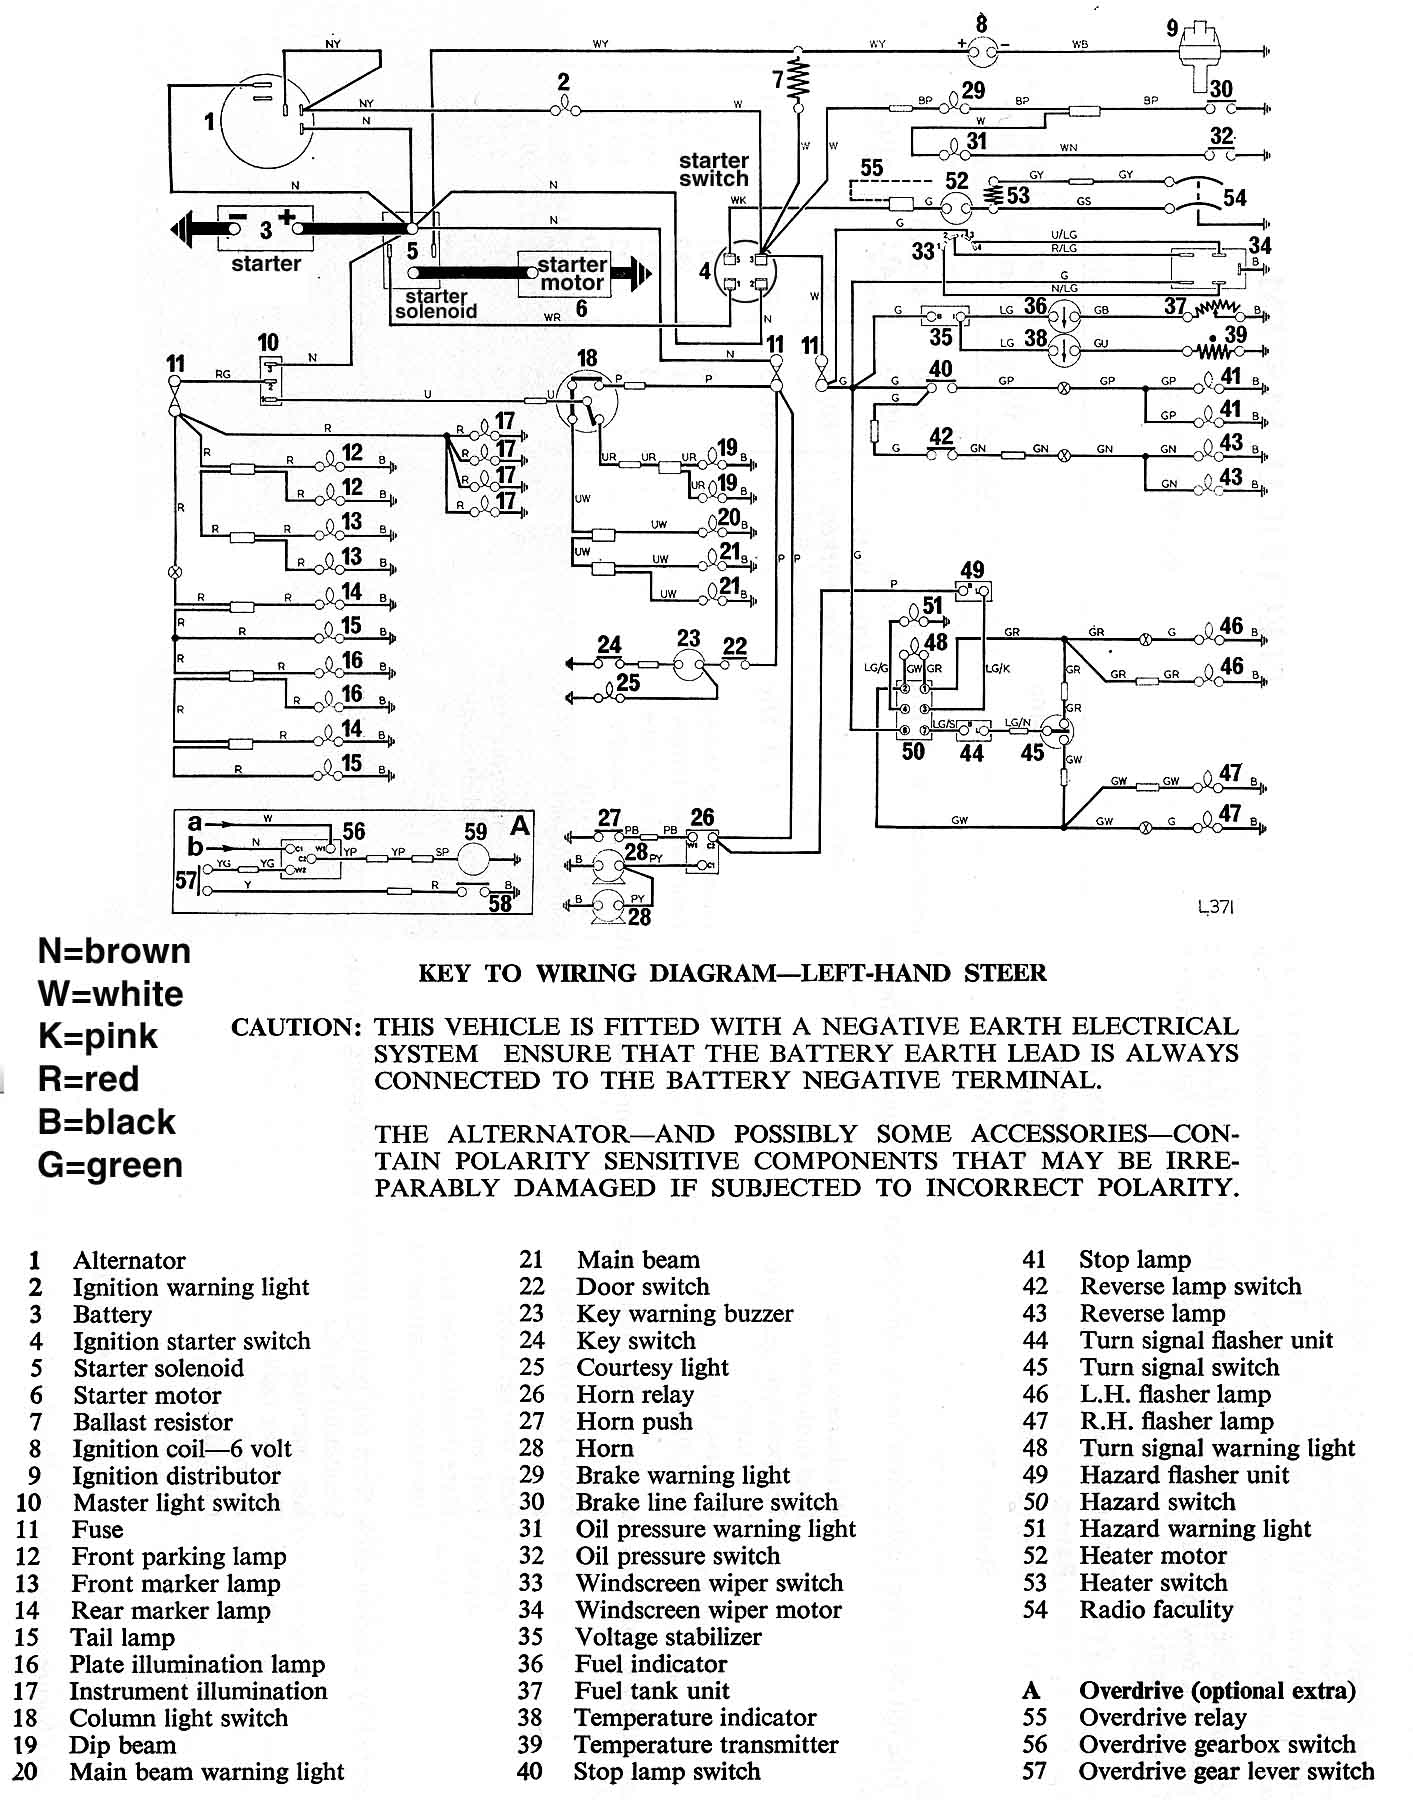 MKIVwire wiring schematics and diagrams triumph spitfire, gt6, herald 1969 triumph tr6 plus wiring diagram at bayanpartner.co